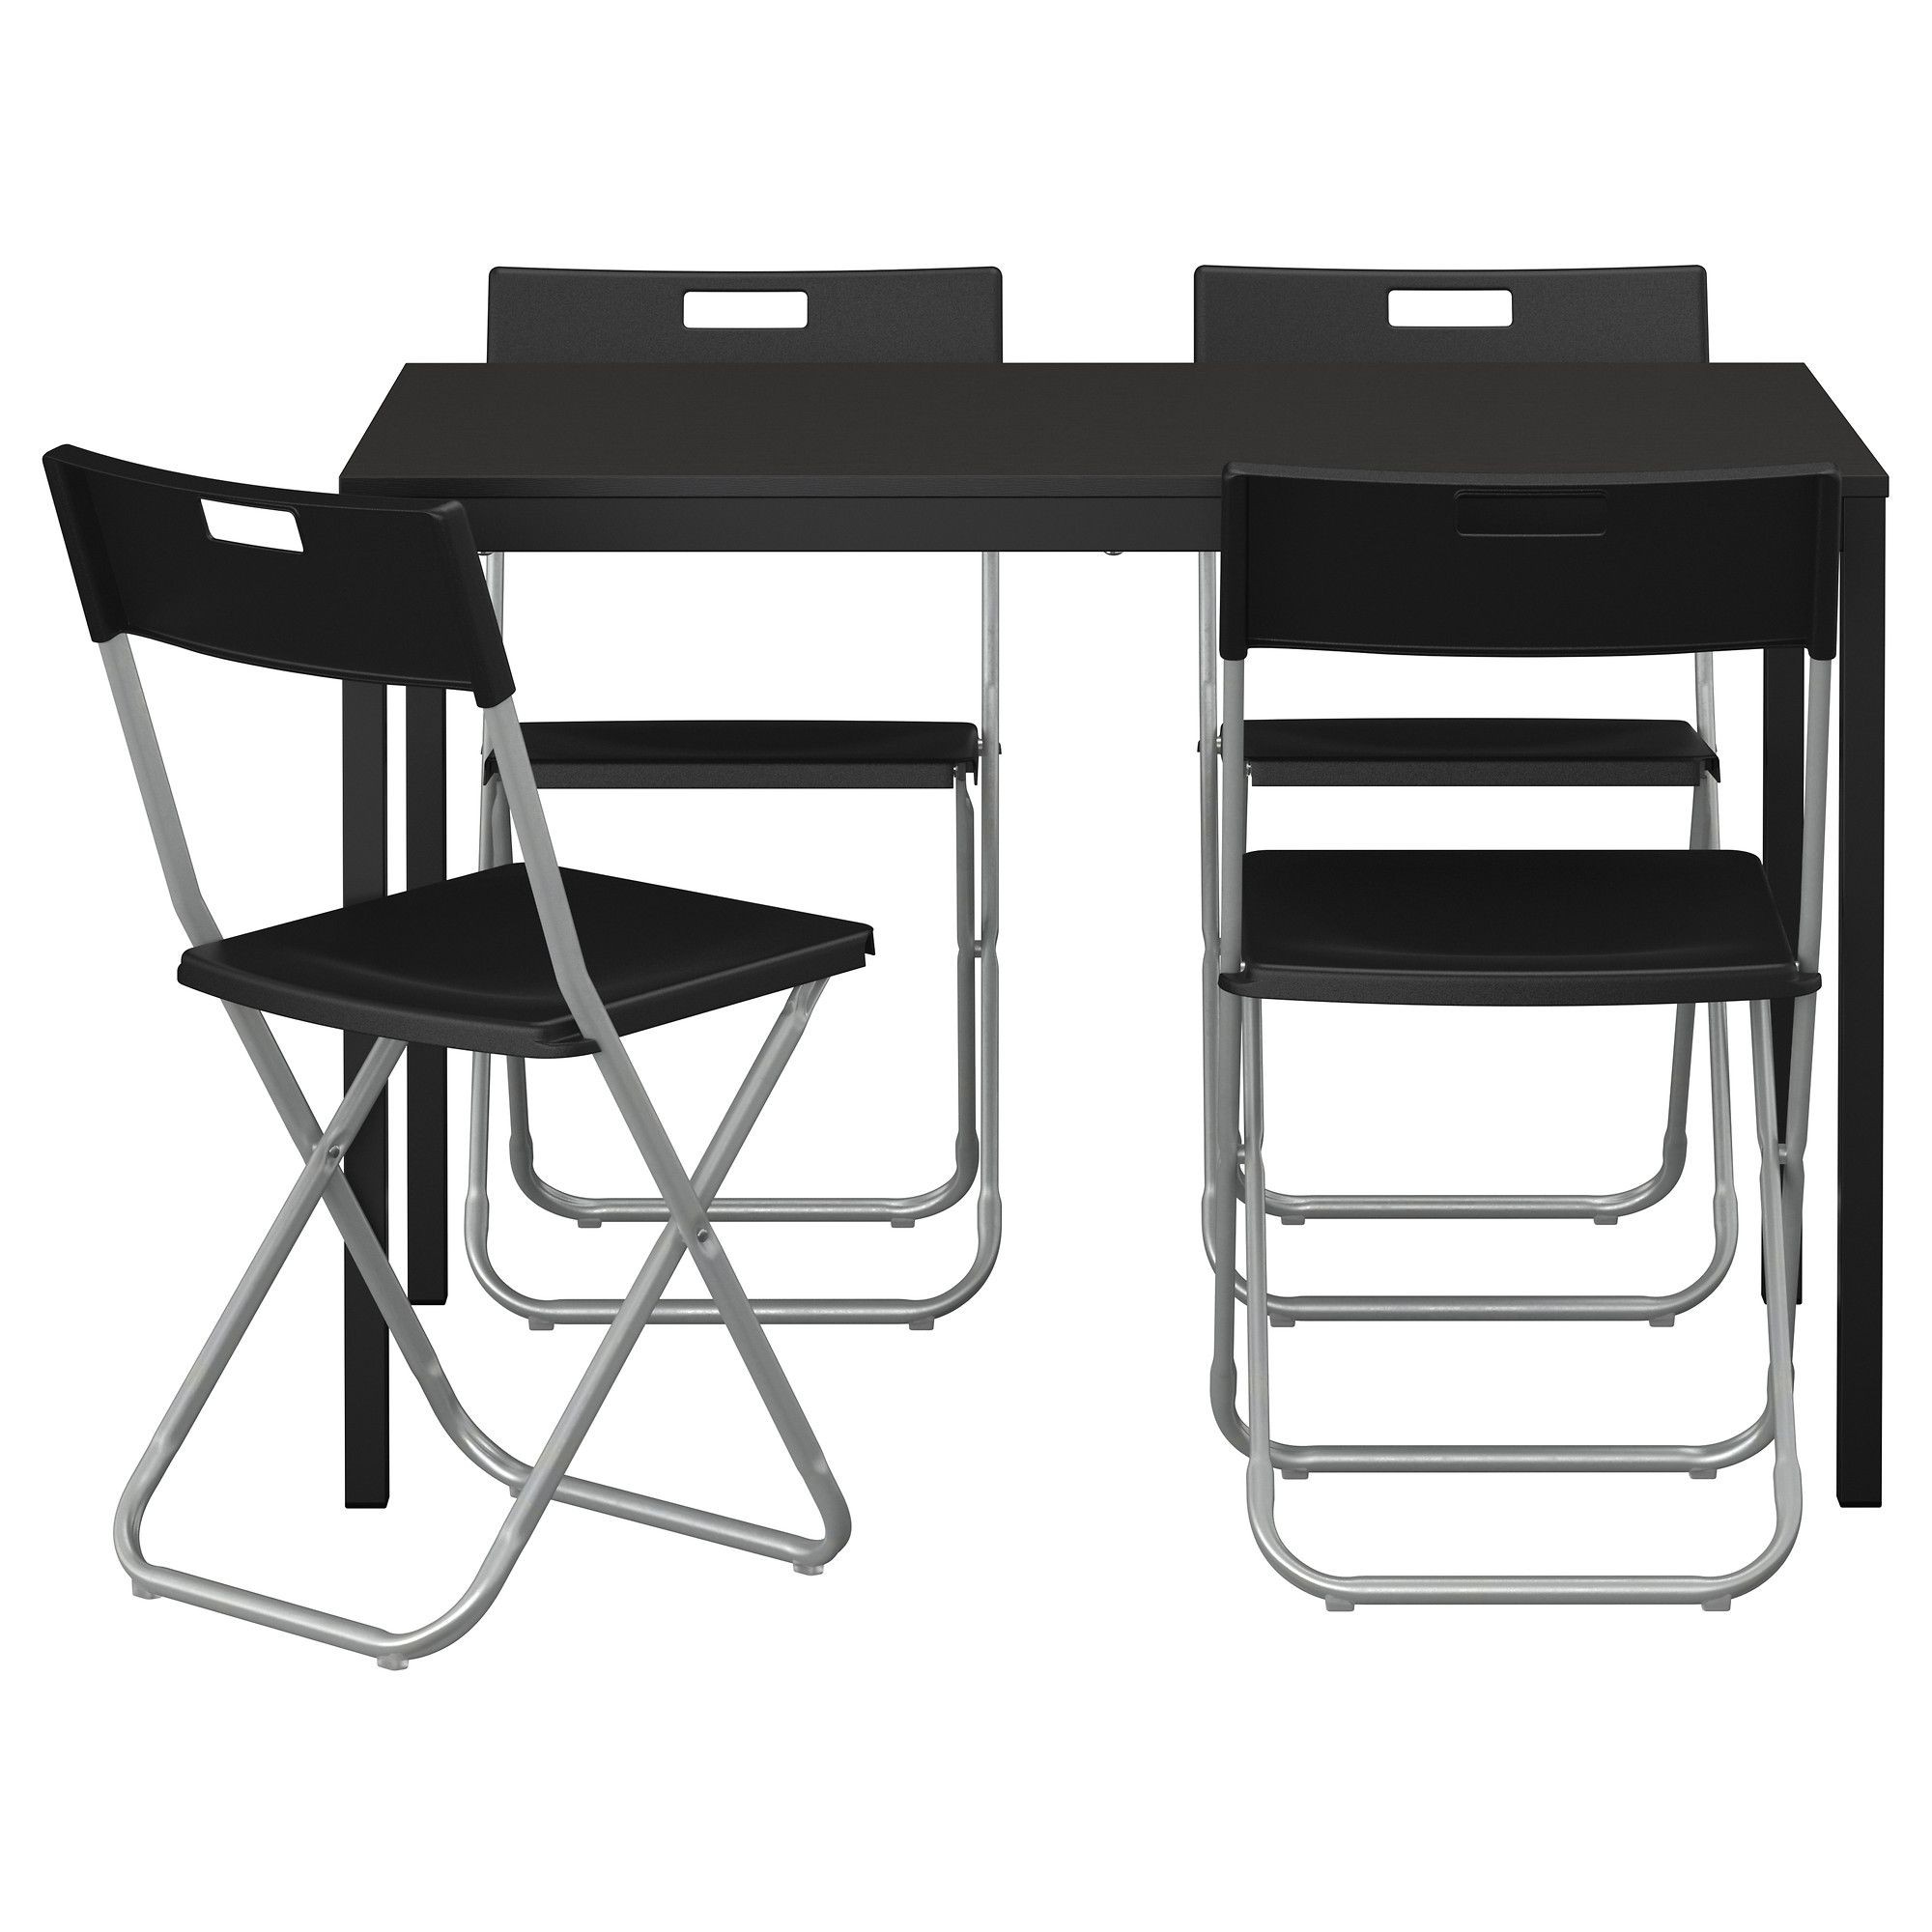 "T""REND– GUNDE Table and 4 chairs IKEA $70"